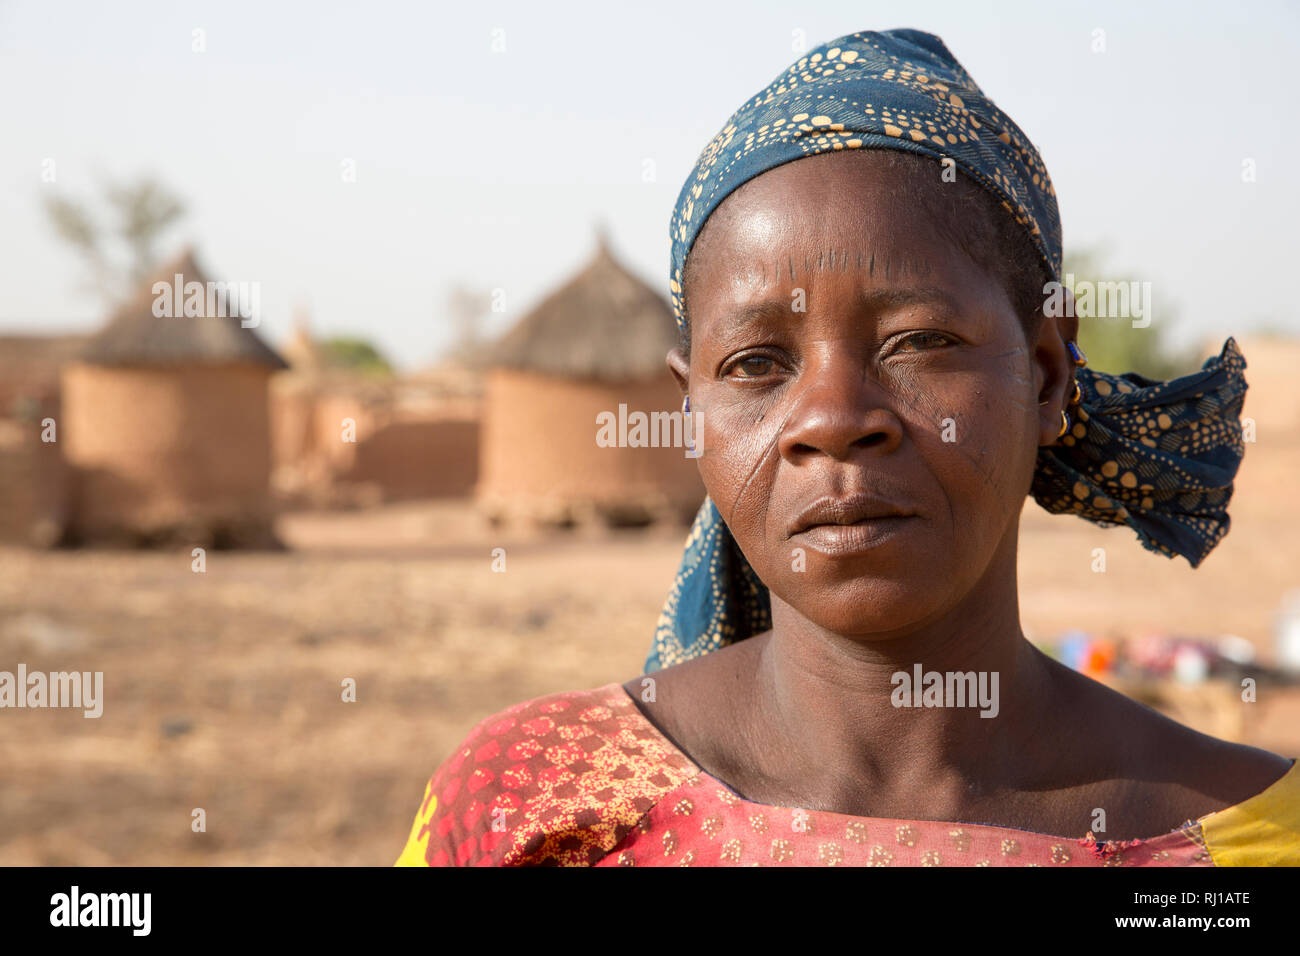 Kourono village, Yako province, Burkina Faso; A portrait of a woman with tribal marking on her face, in front of village grain stores. Stock Photo